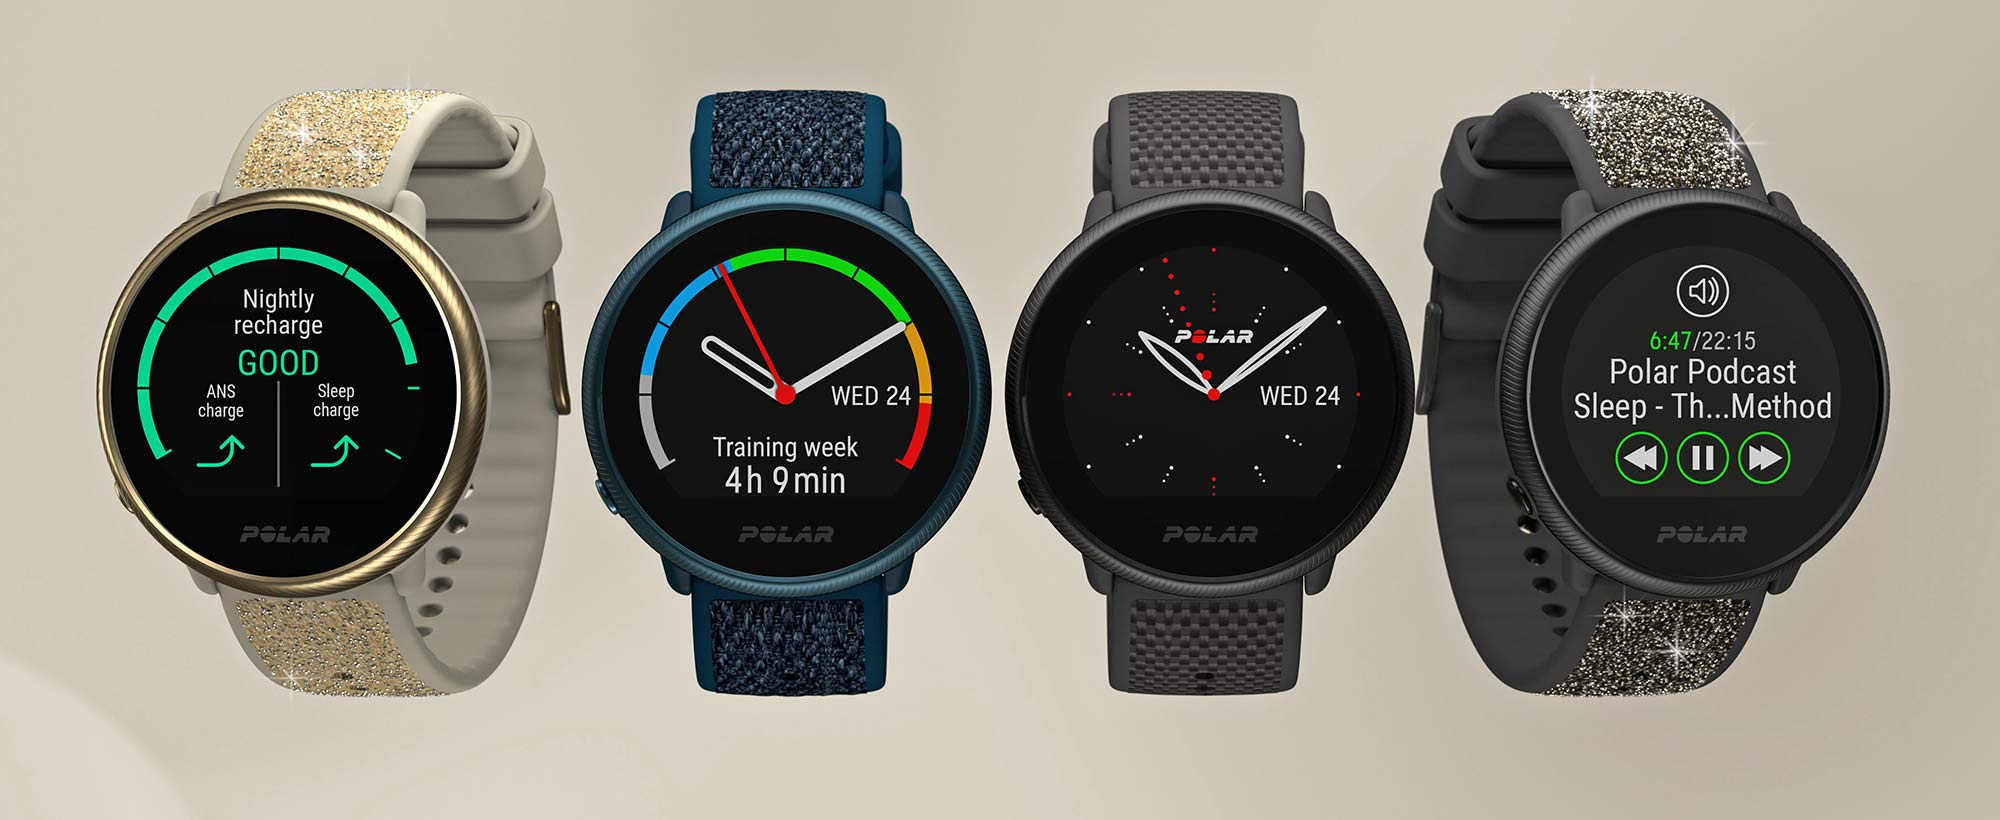 Updated Polar Ignite 2 smartwatch, colors